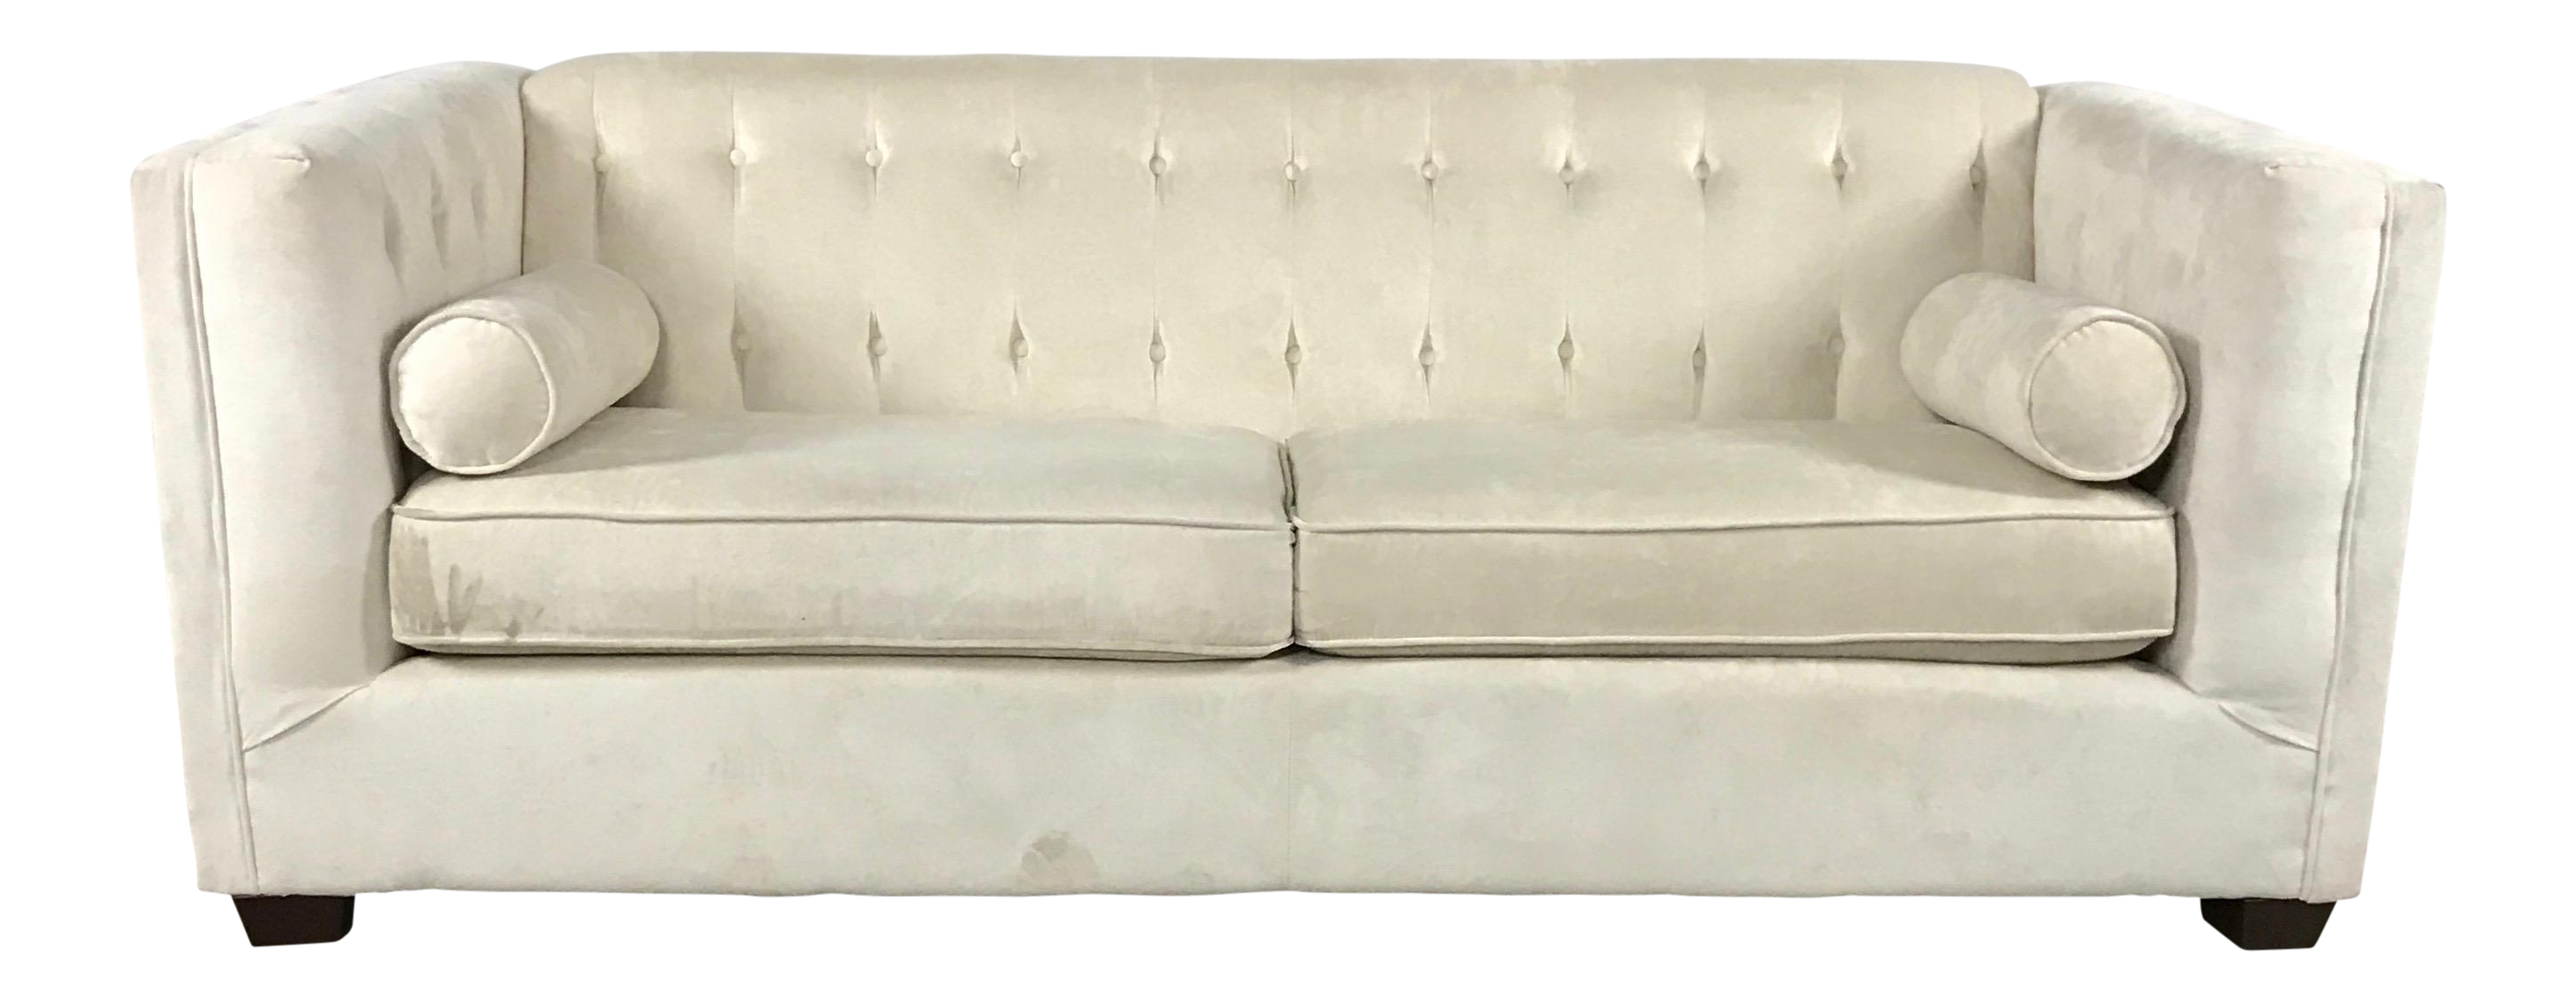 Modern Tufted White Suede Sofa